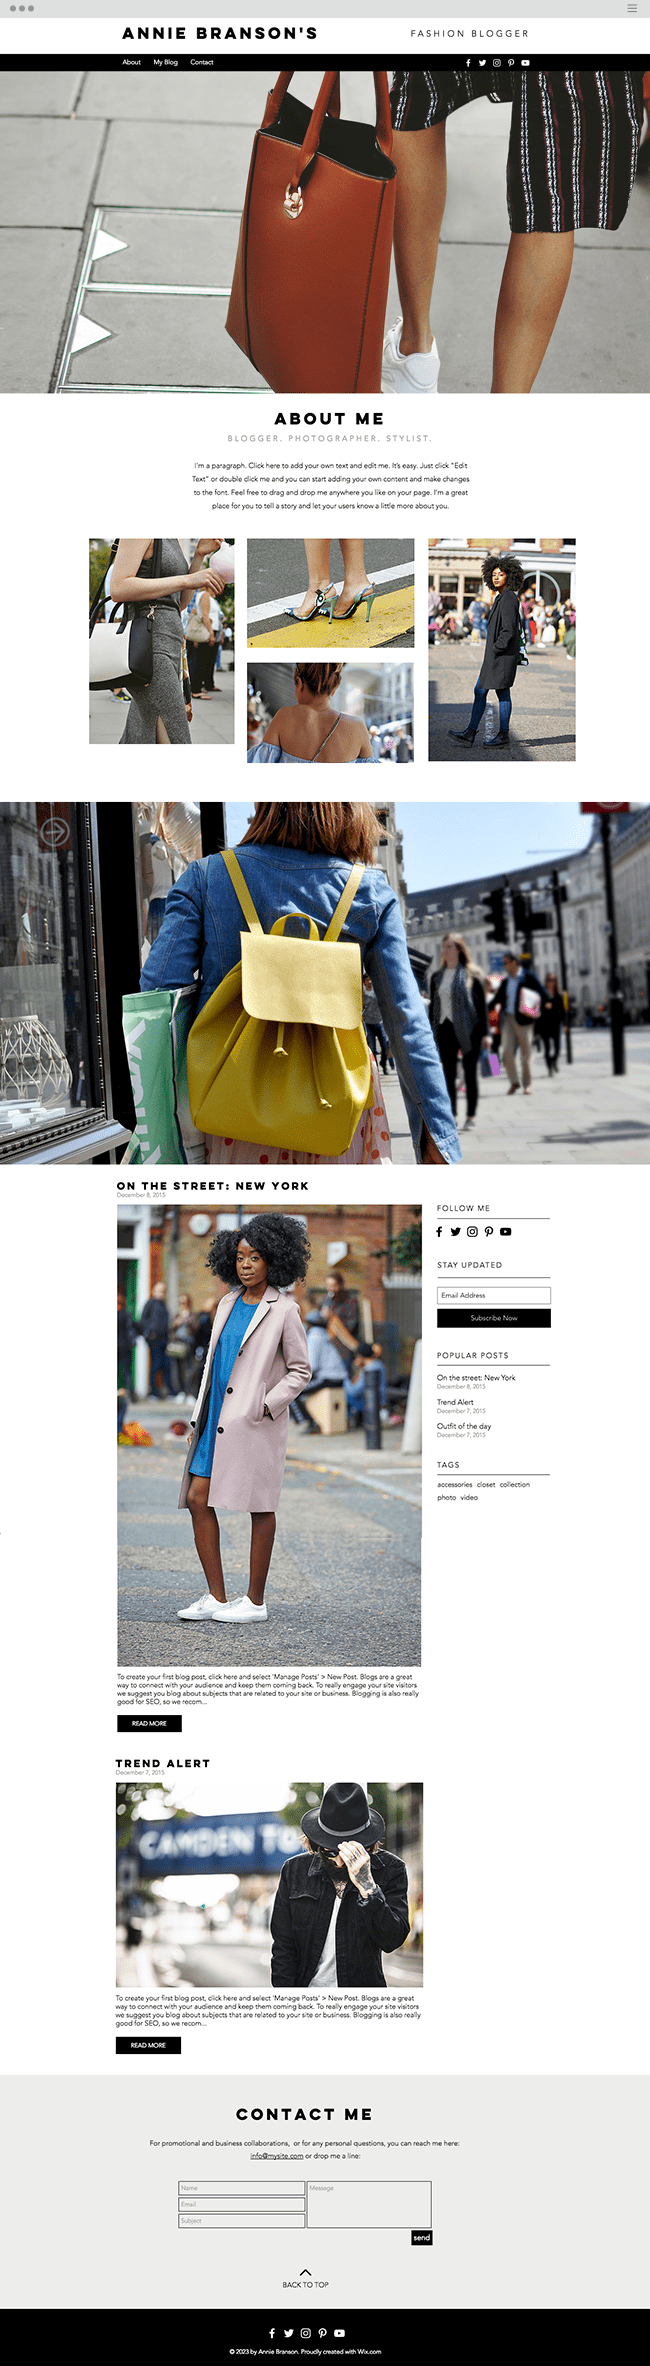 Street Fashion Blog Website Template WIX